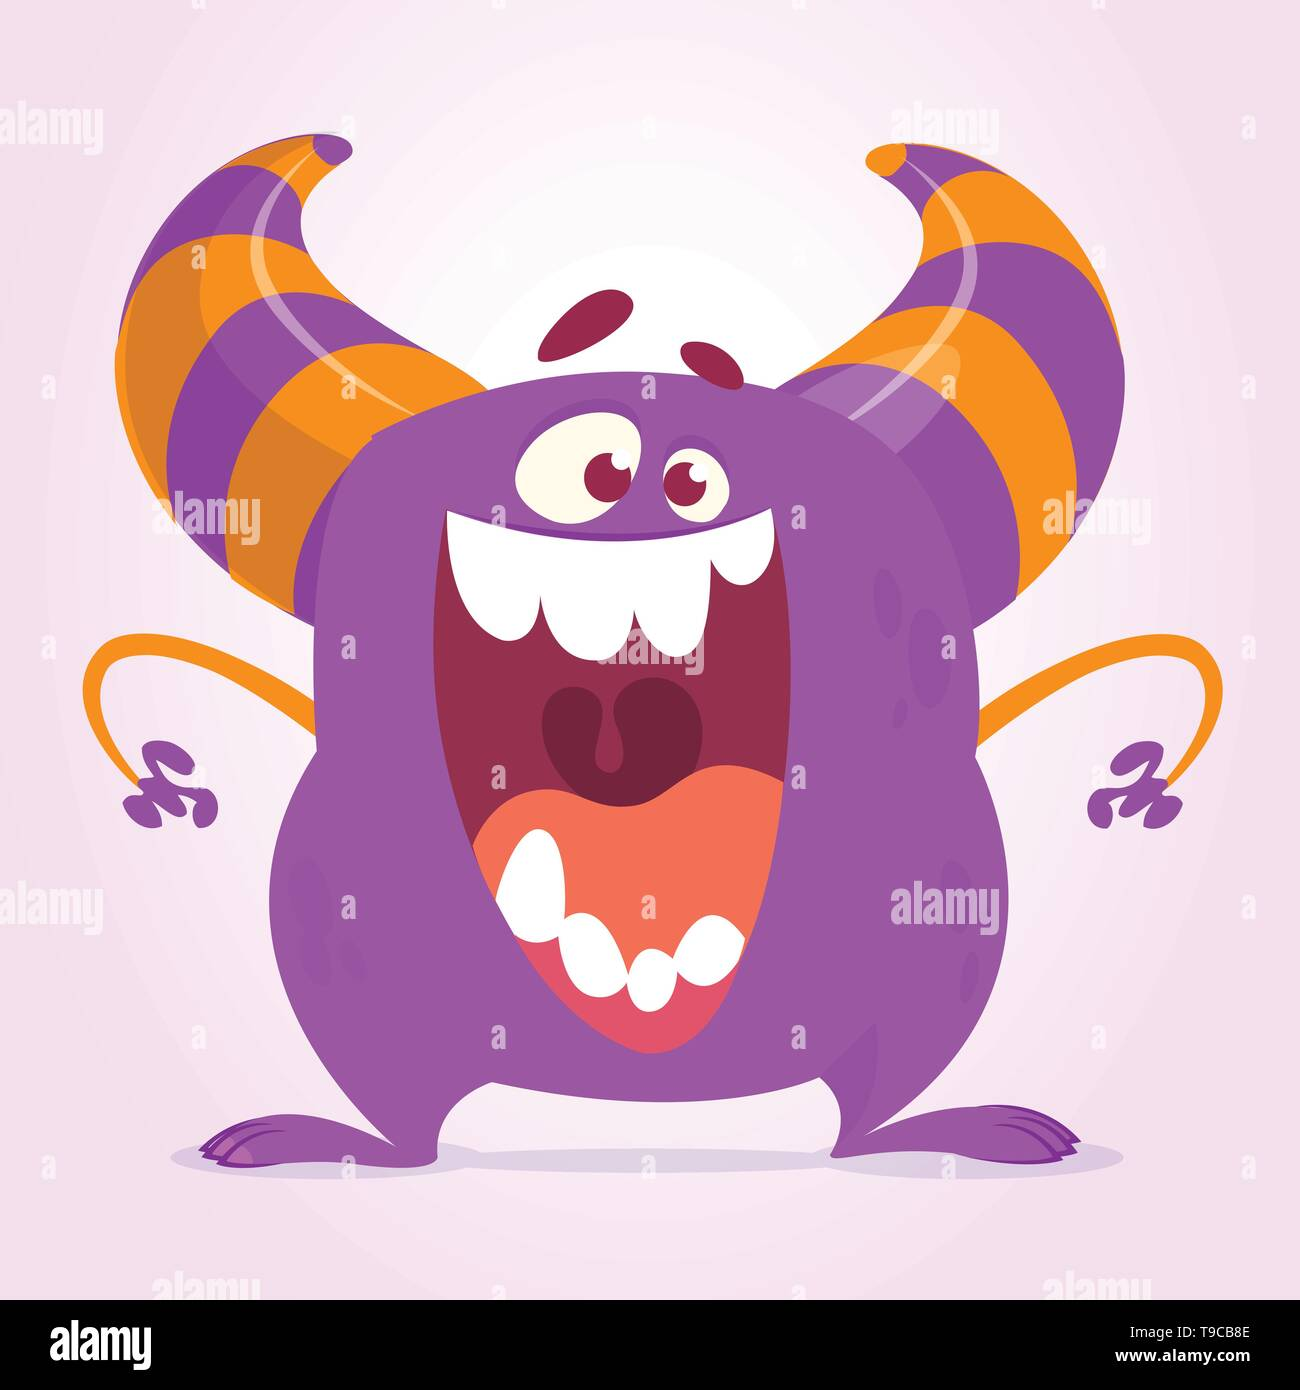 Cute cartoon monster. Vector fat monster mascot character. Halloween design for party decoration, print or children book - Stock Image